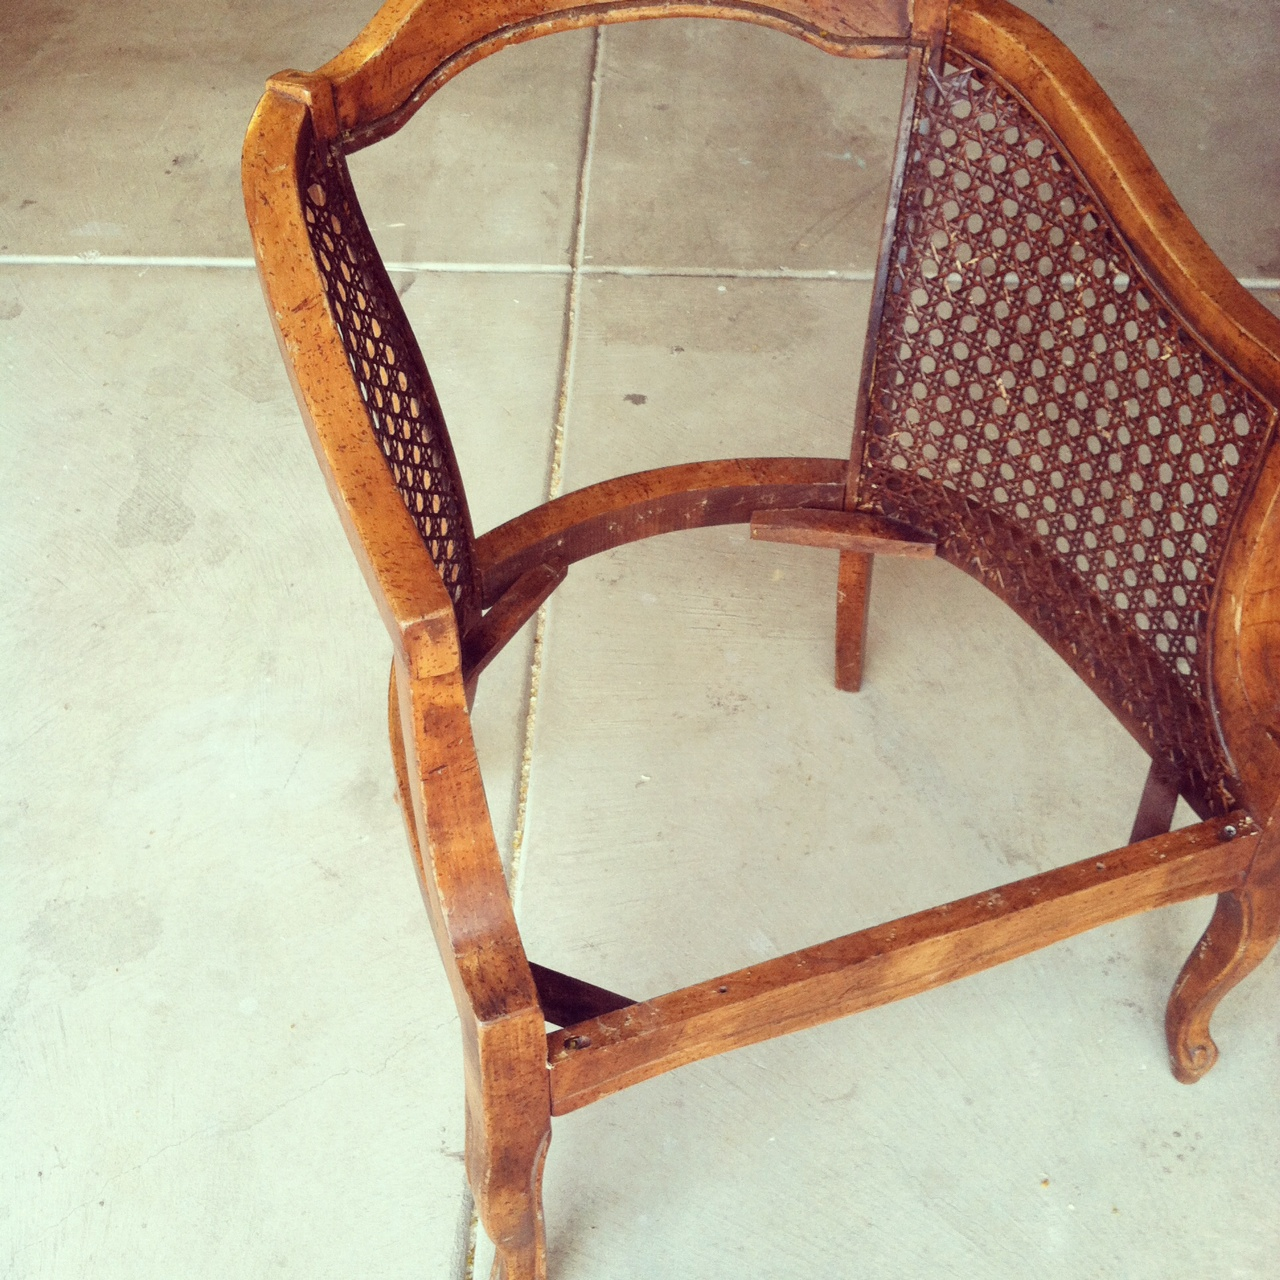 Cane Chair Designs : ... , so I plan to paint as well. Luckily the caning is in great shape